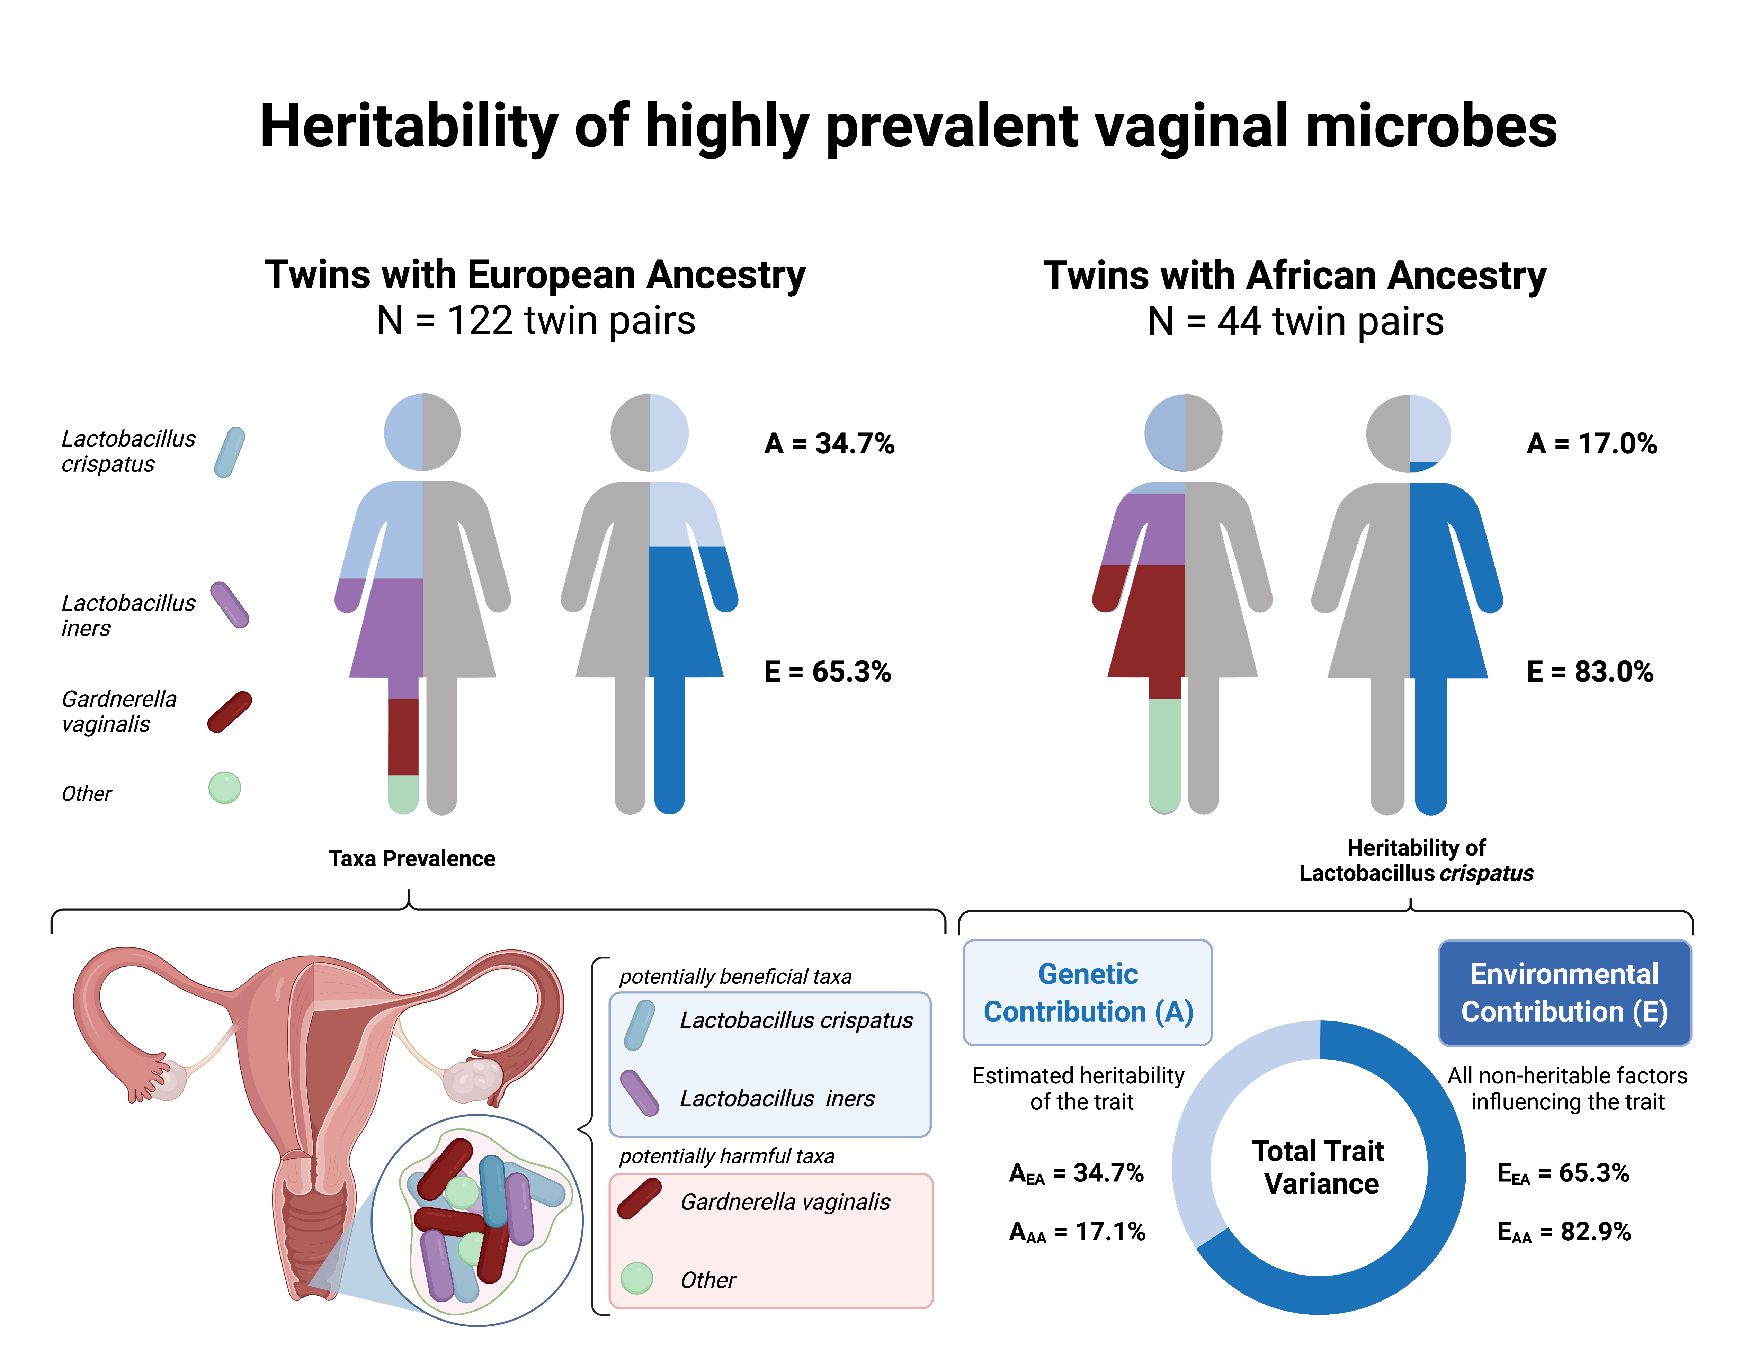 Heritability of highly prevalent vaginal microbes